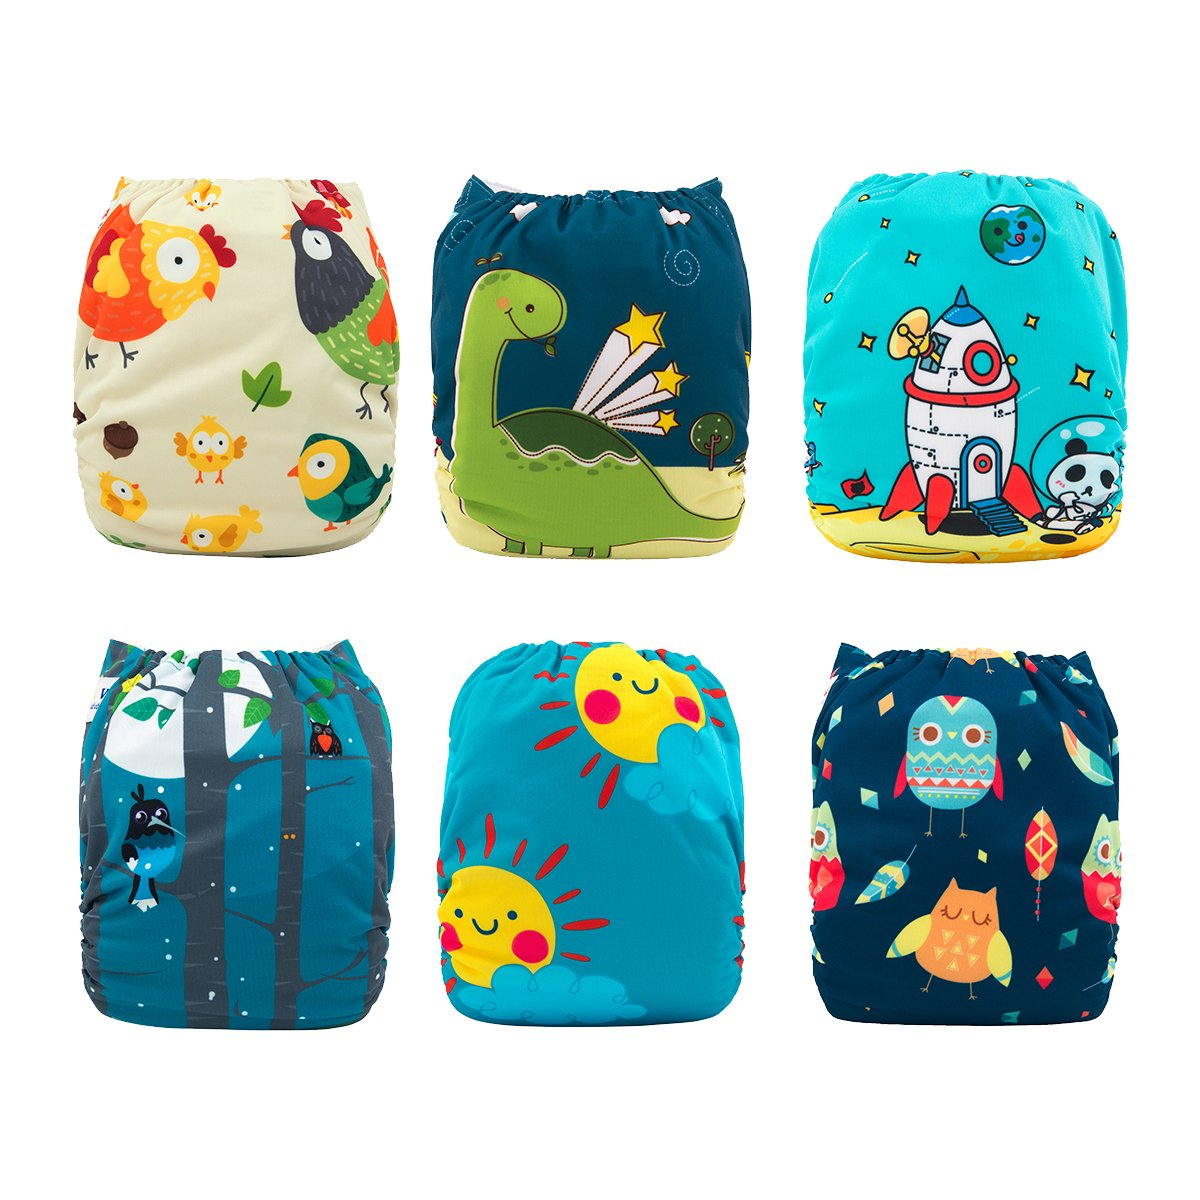 Babygoal Baby Cloth Diapers Washable Pocket Nappy, 6pcs Cloth Diapers+6 Inserts+4pcs Bamboo Inserts,Boy Color 6FB15